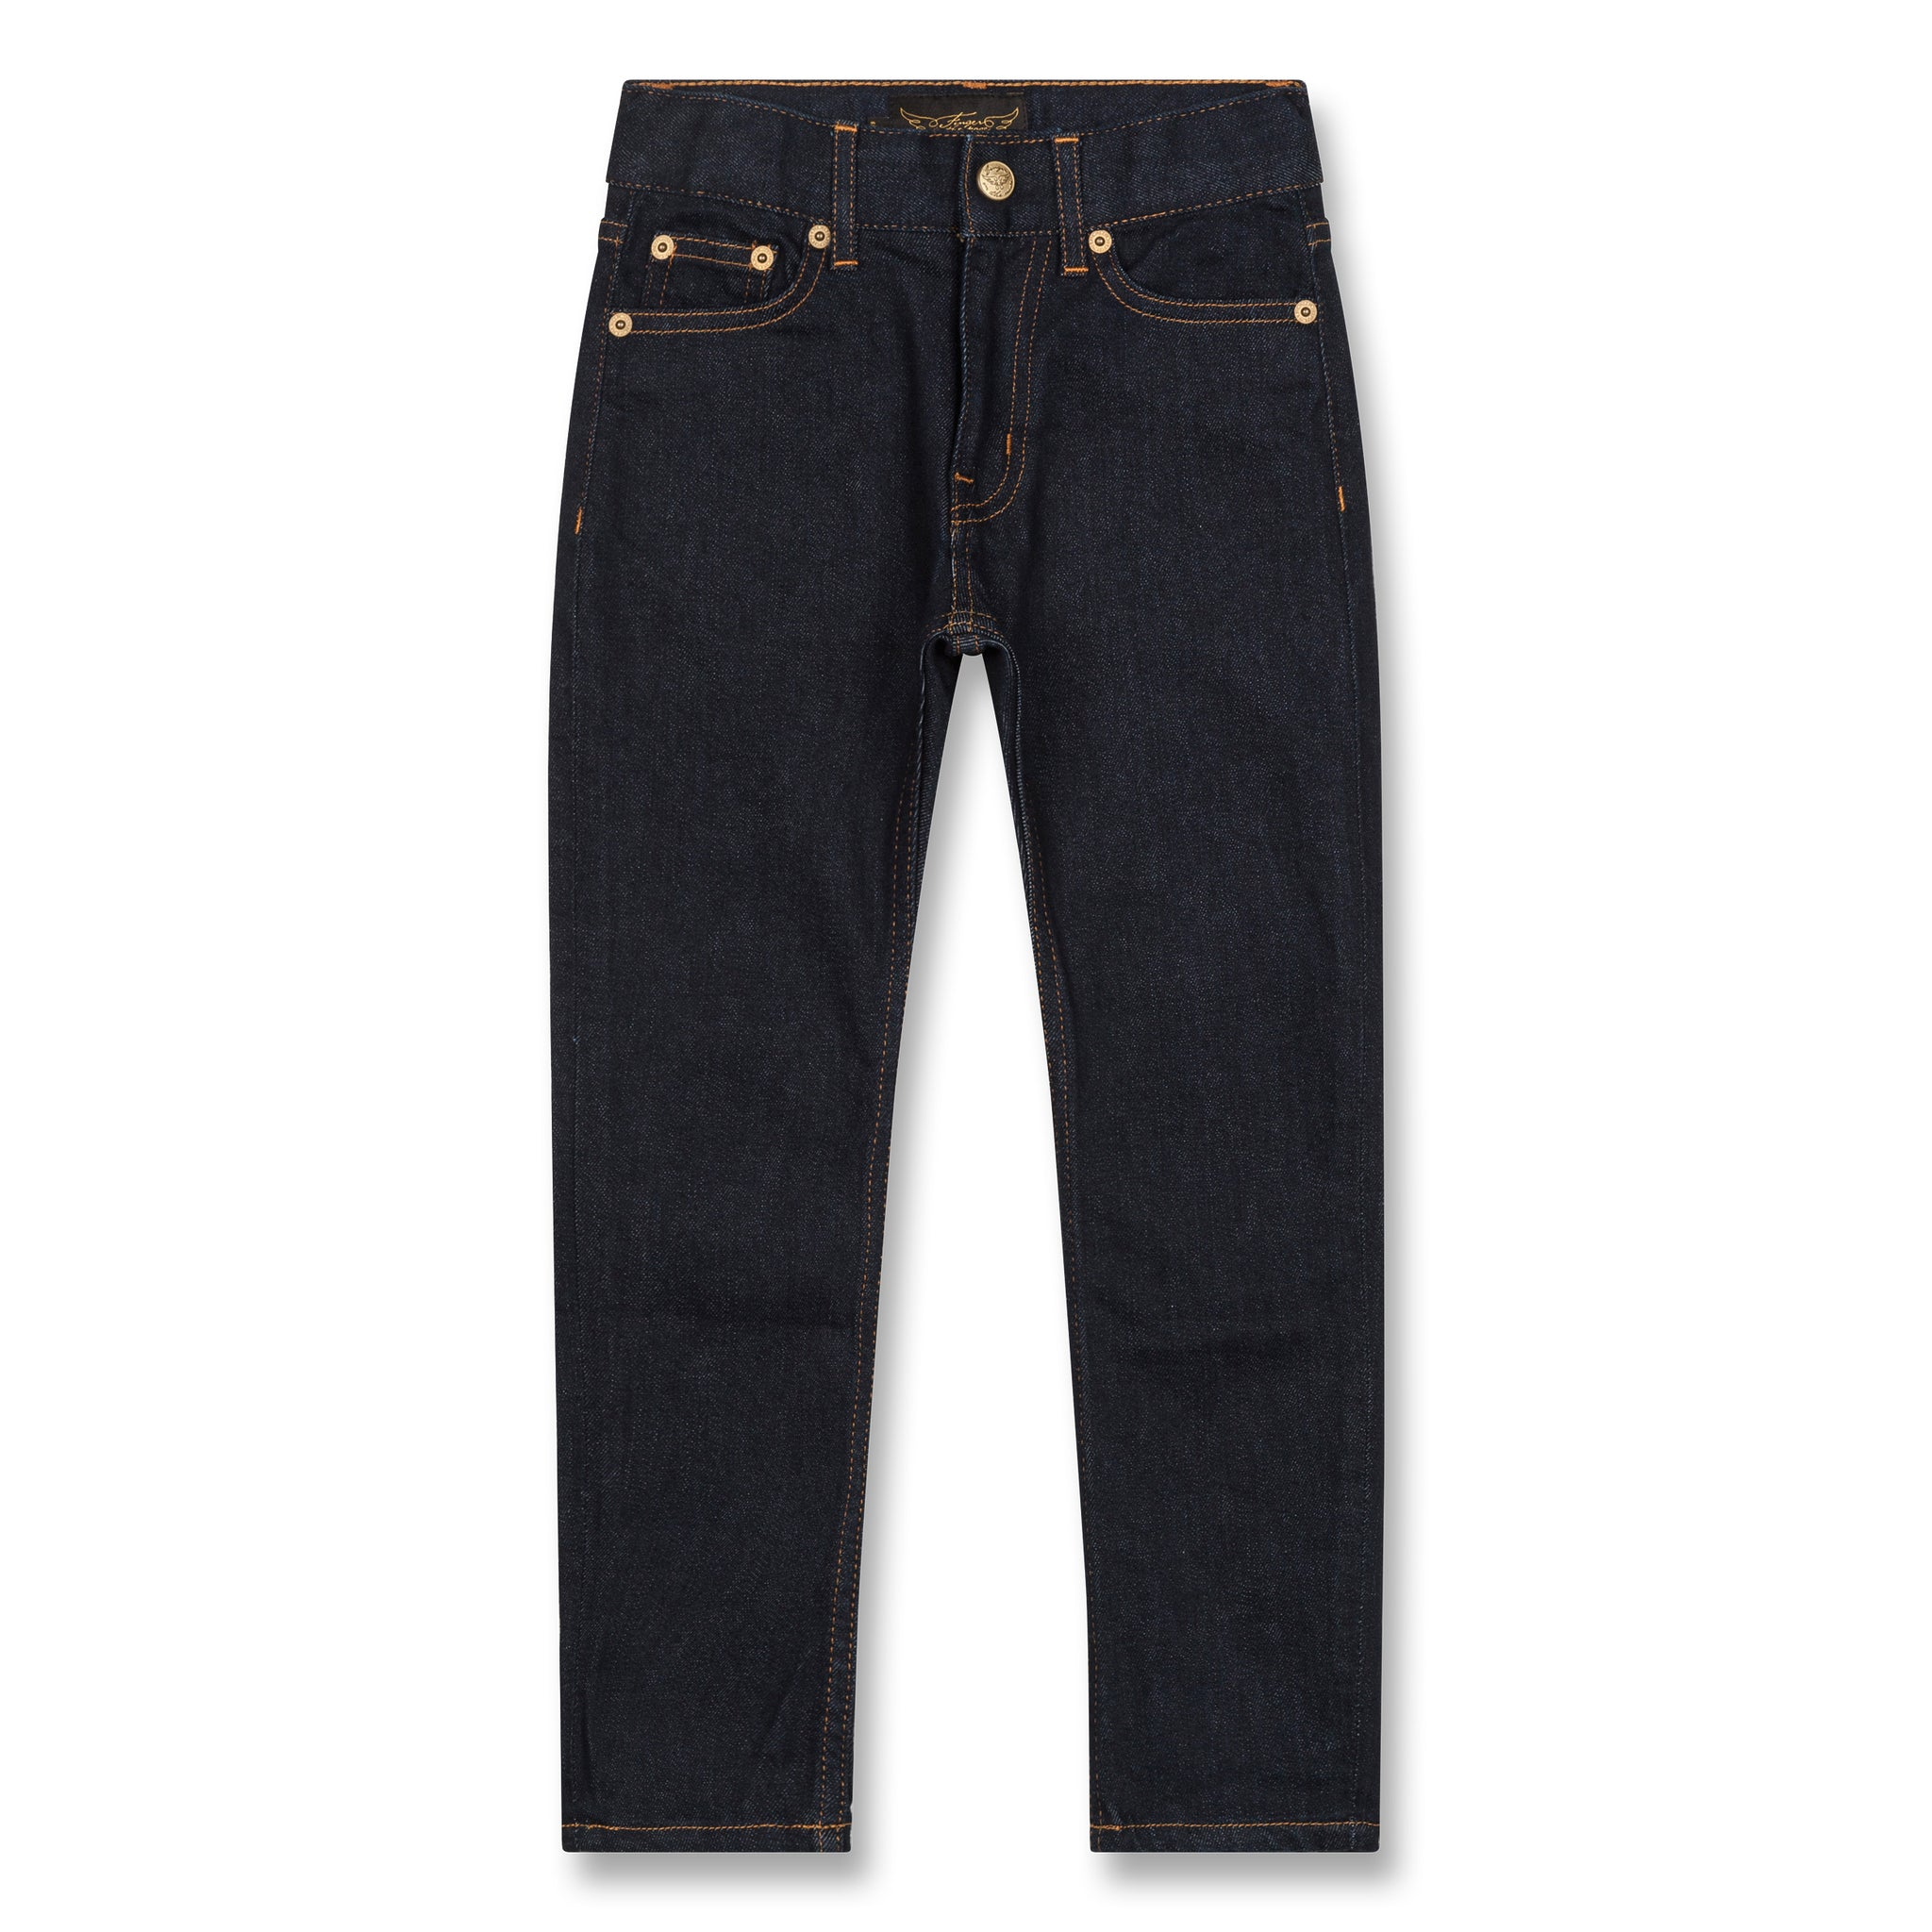 EWAN Raw Denim Blue - 5 Pocket Comfort Fit Jeans 1